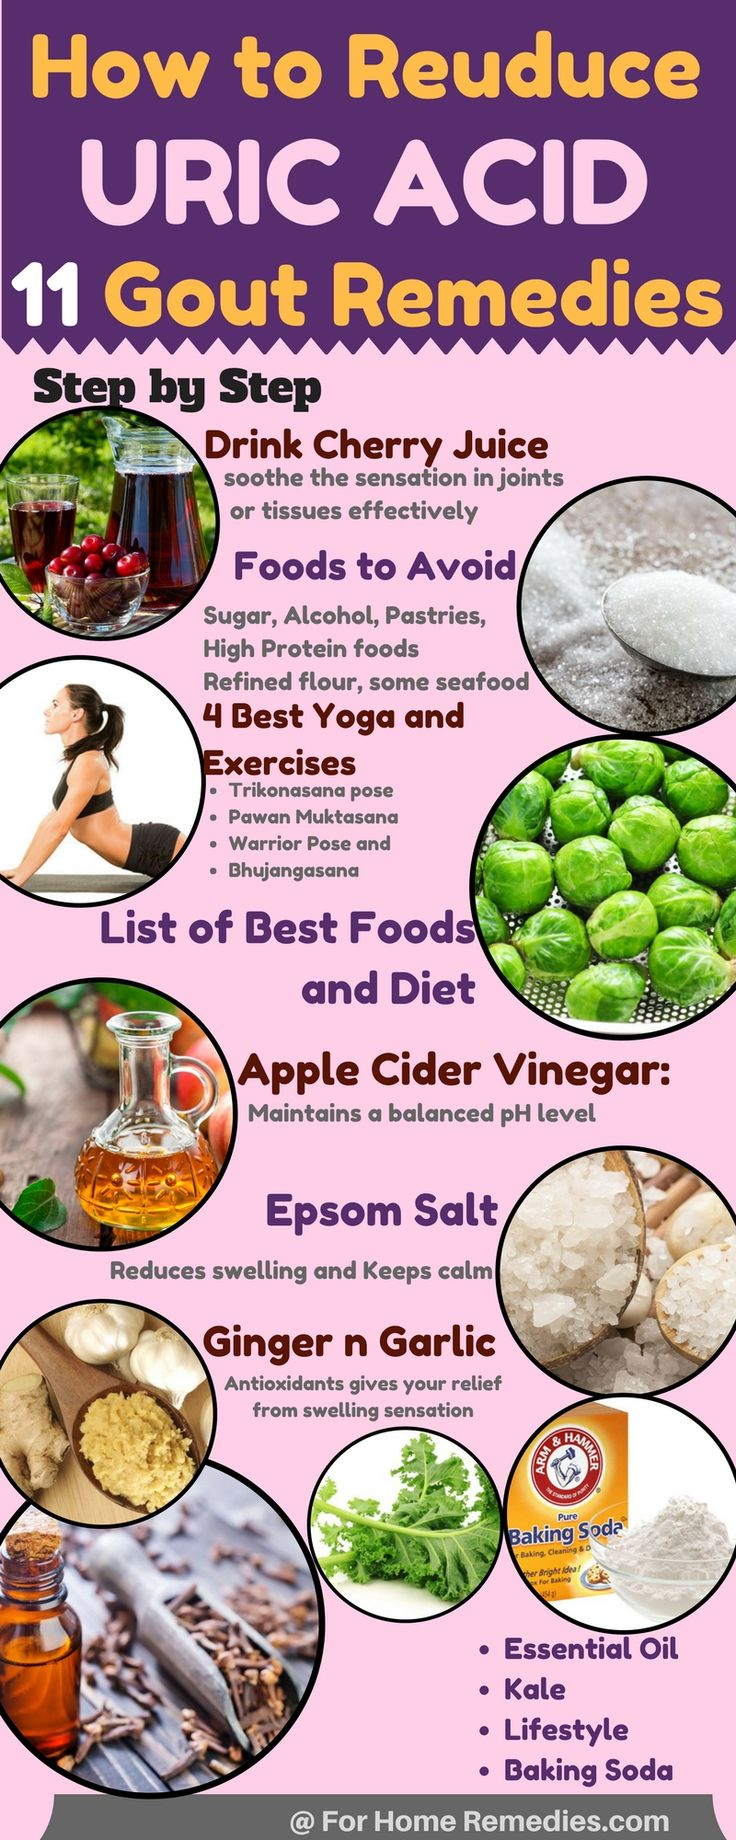 Reduce My Uric Acid Levels: Best diet and foods for gout home remedies: Learn how to reduce your uric acid levels and get rid of gout. Cherry Juice, Yoga, Lifestyle, Ginger Garlic and Baking soda, essential oil, apple cider vinegar and kale health benefit http://www.wartalooza.com/treatments/nail-polish